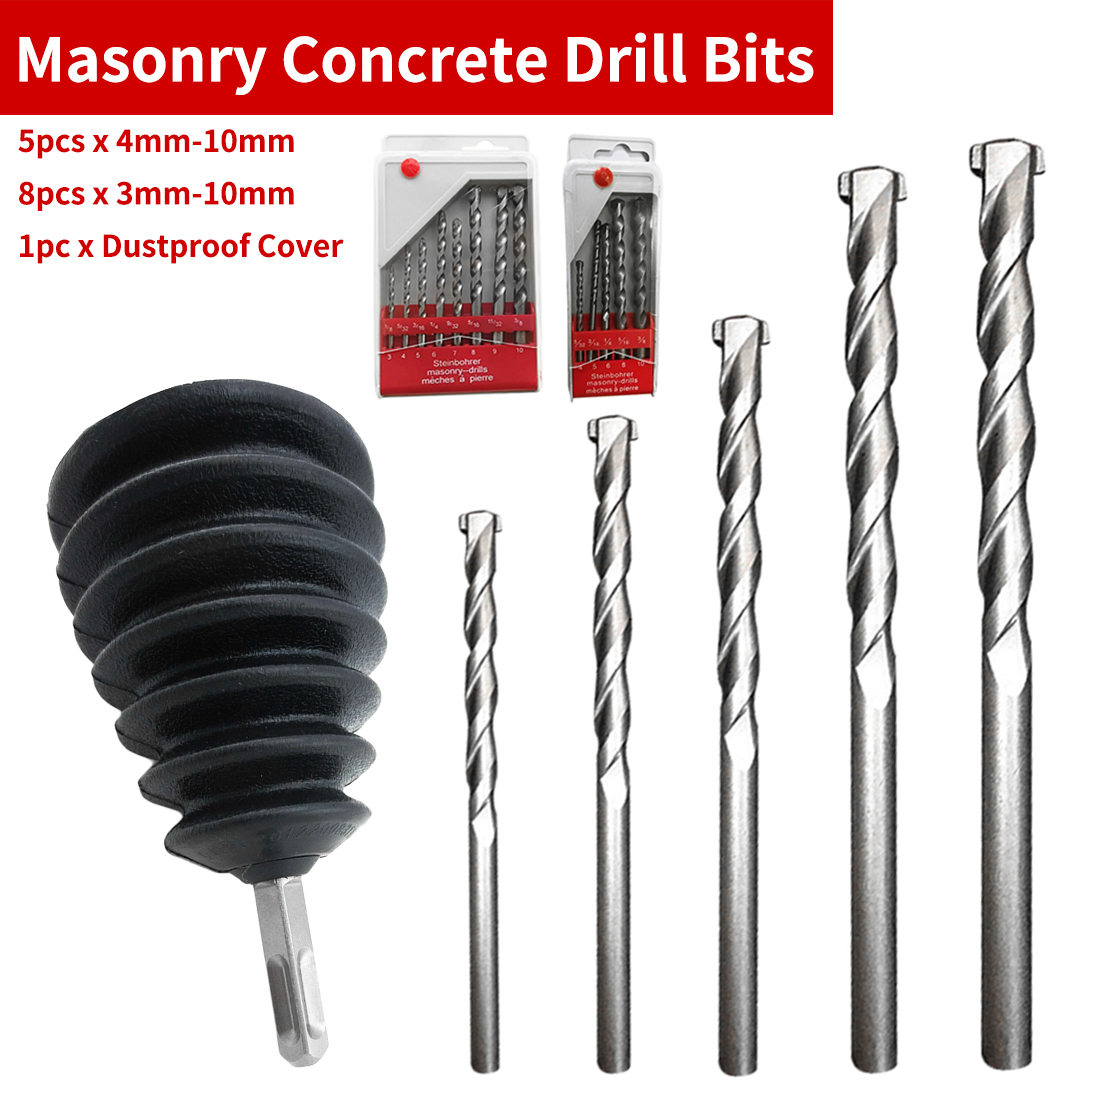 3mm-10mm/4mm-10mm Drill Bit Tool Set 5pcs/8pcs Nickel Plating Round Shank Impact For Wall Cement Alloy Concrete Marble